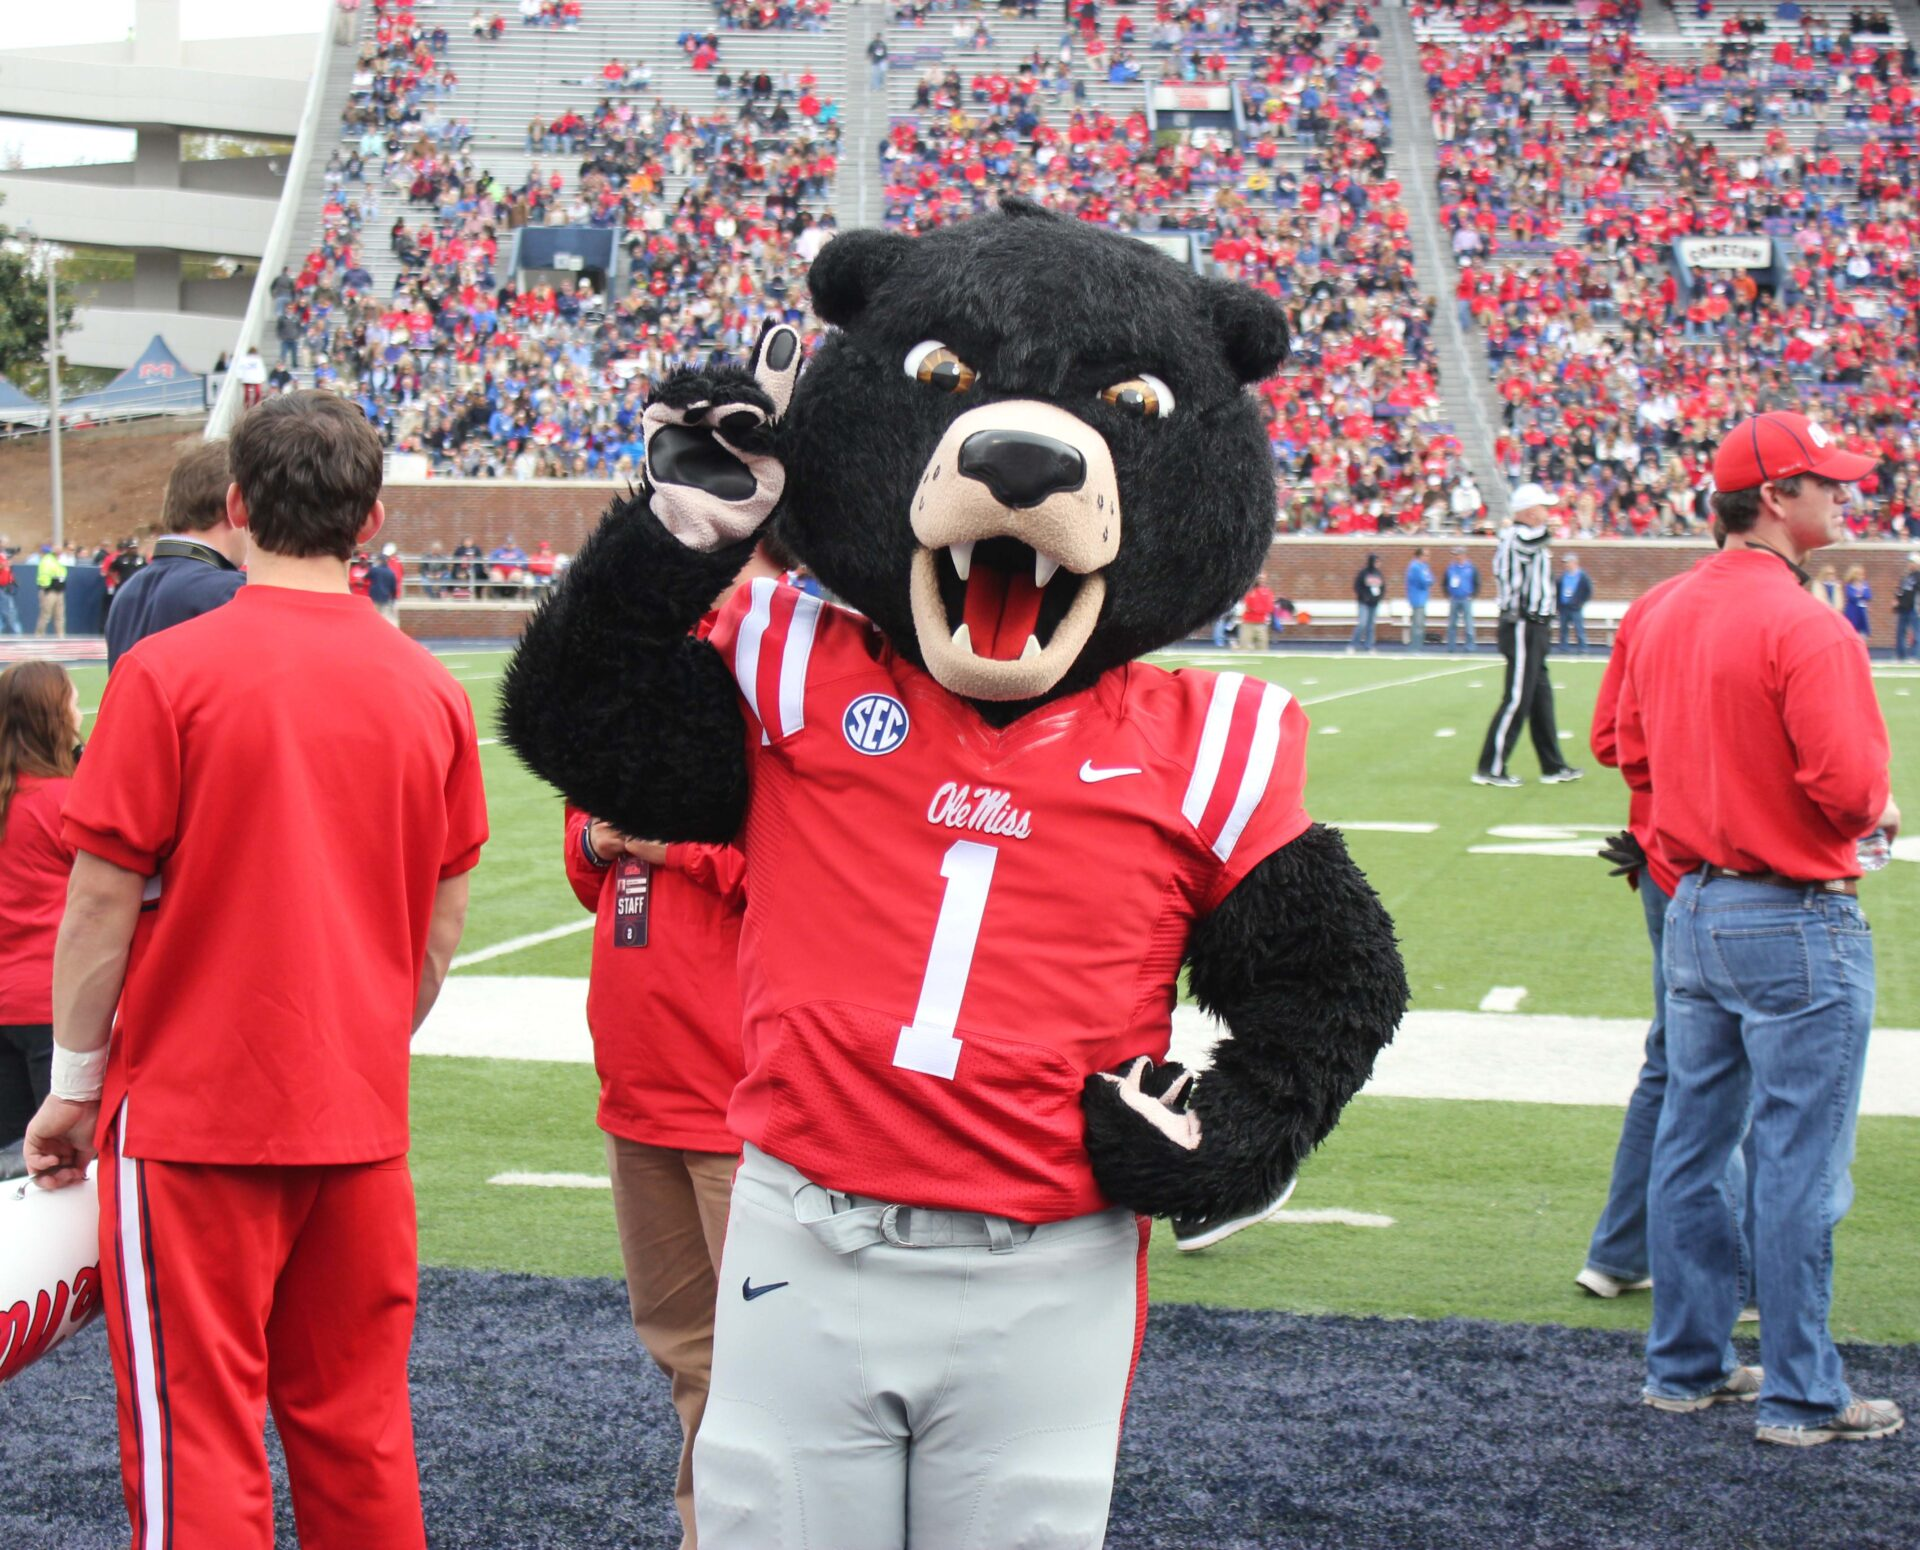 Ole miss gameday colors 2015 - Photo By Callie Daniels Bryant 2014